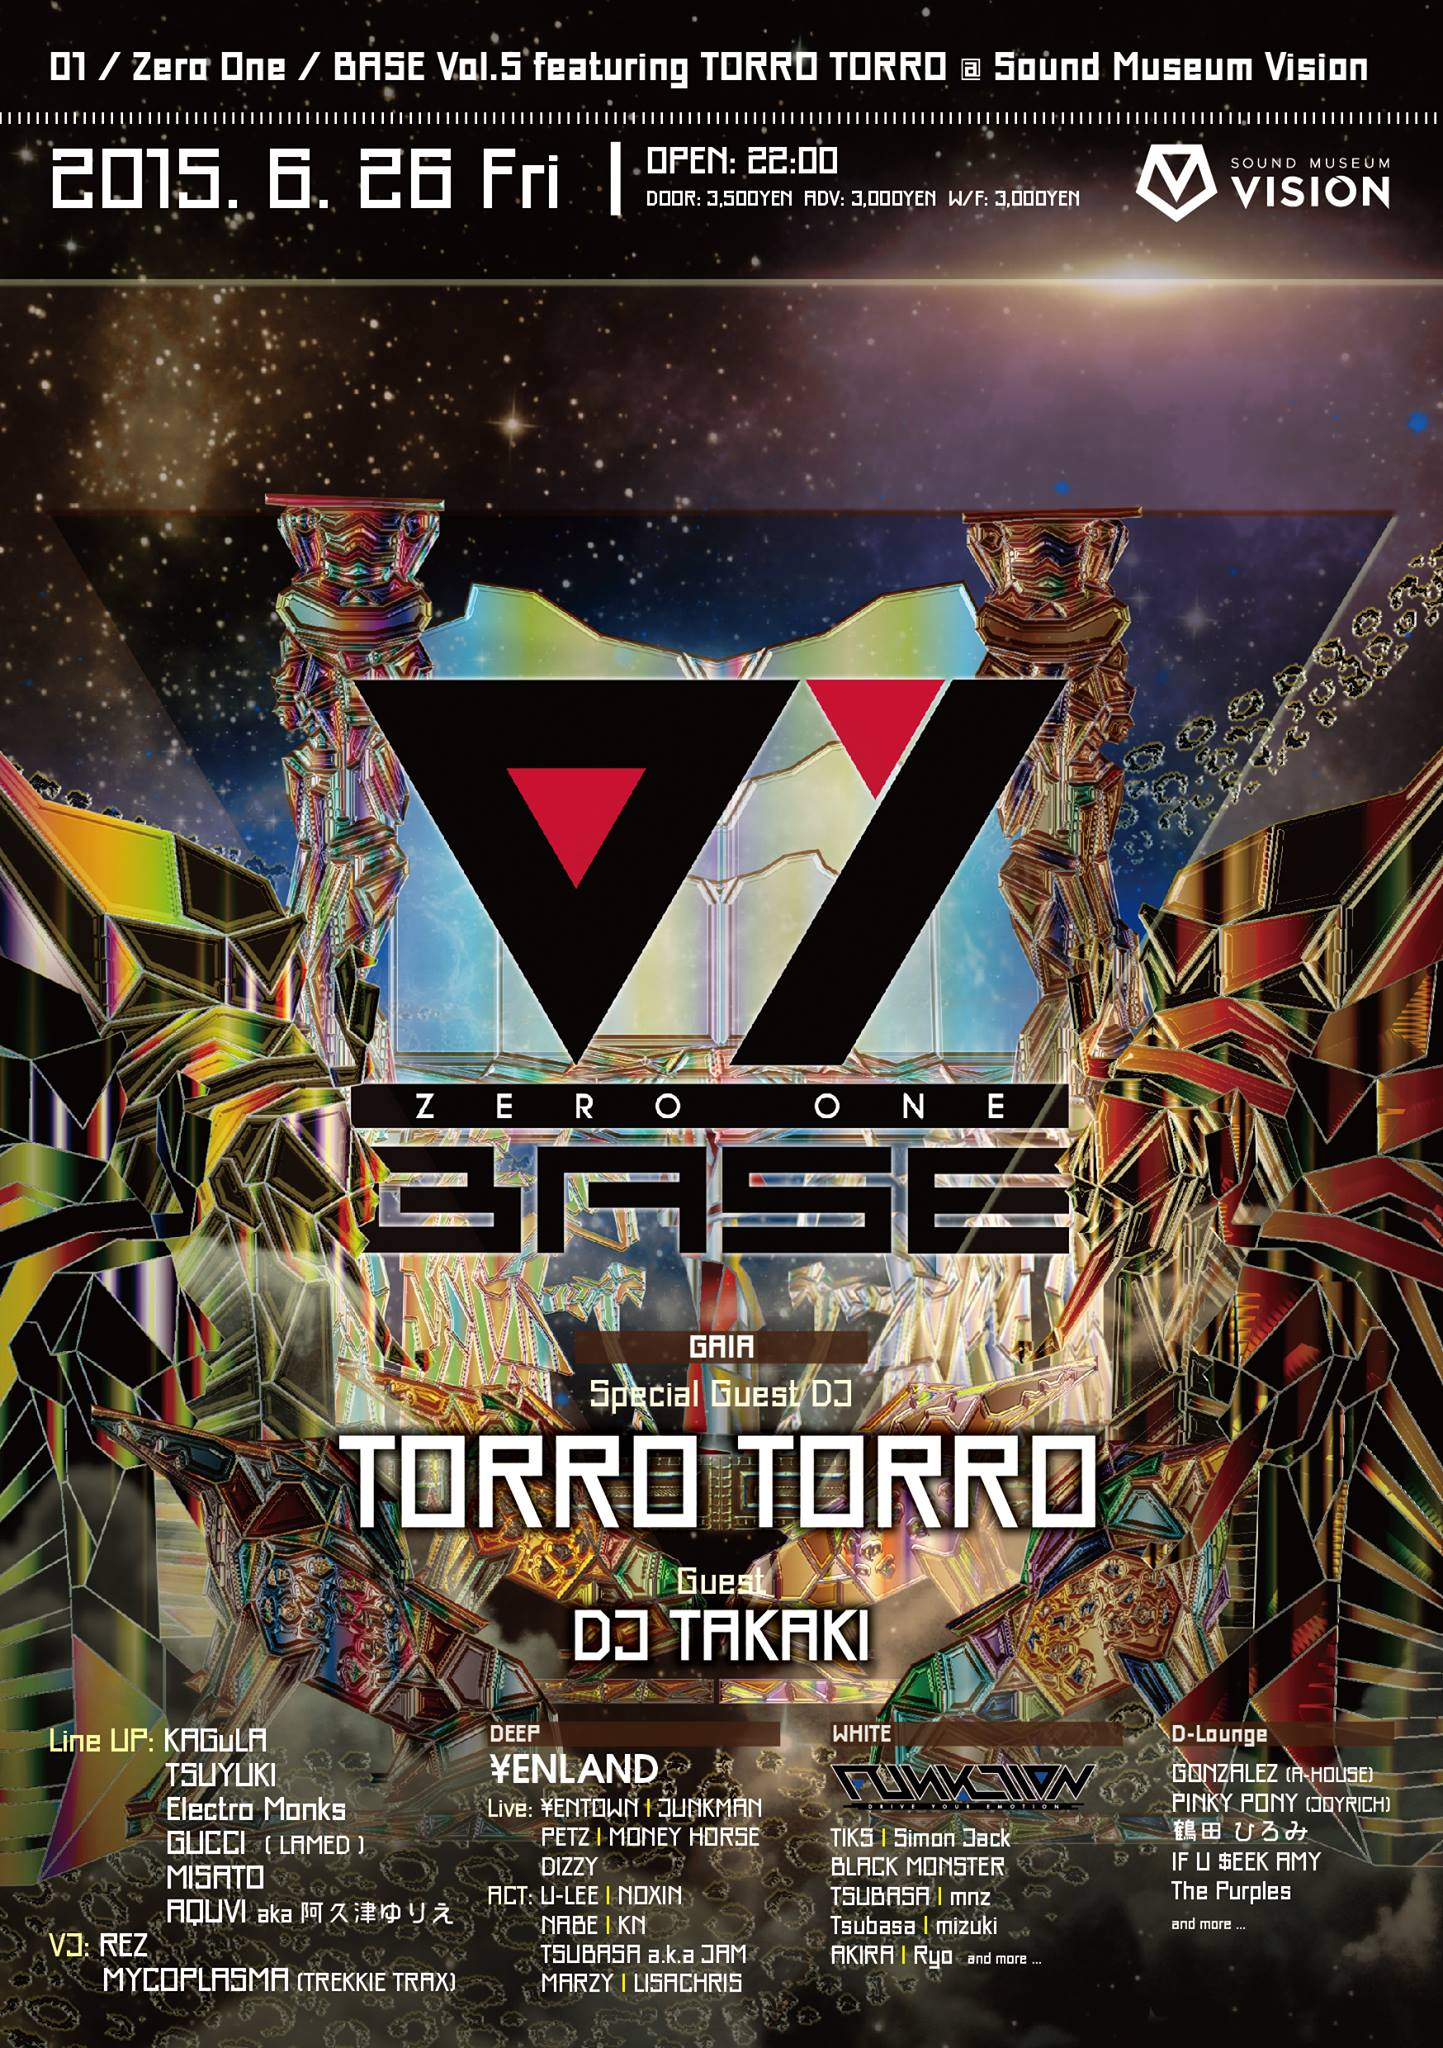 01/Zero One/BASE-TORROTORRO